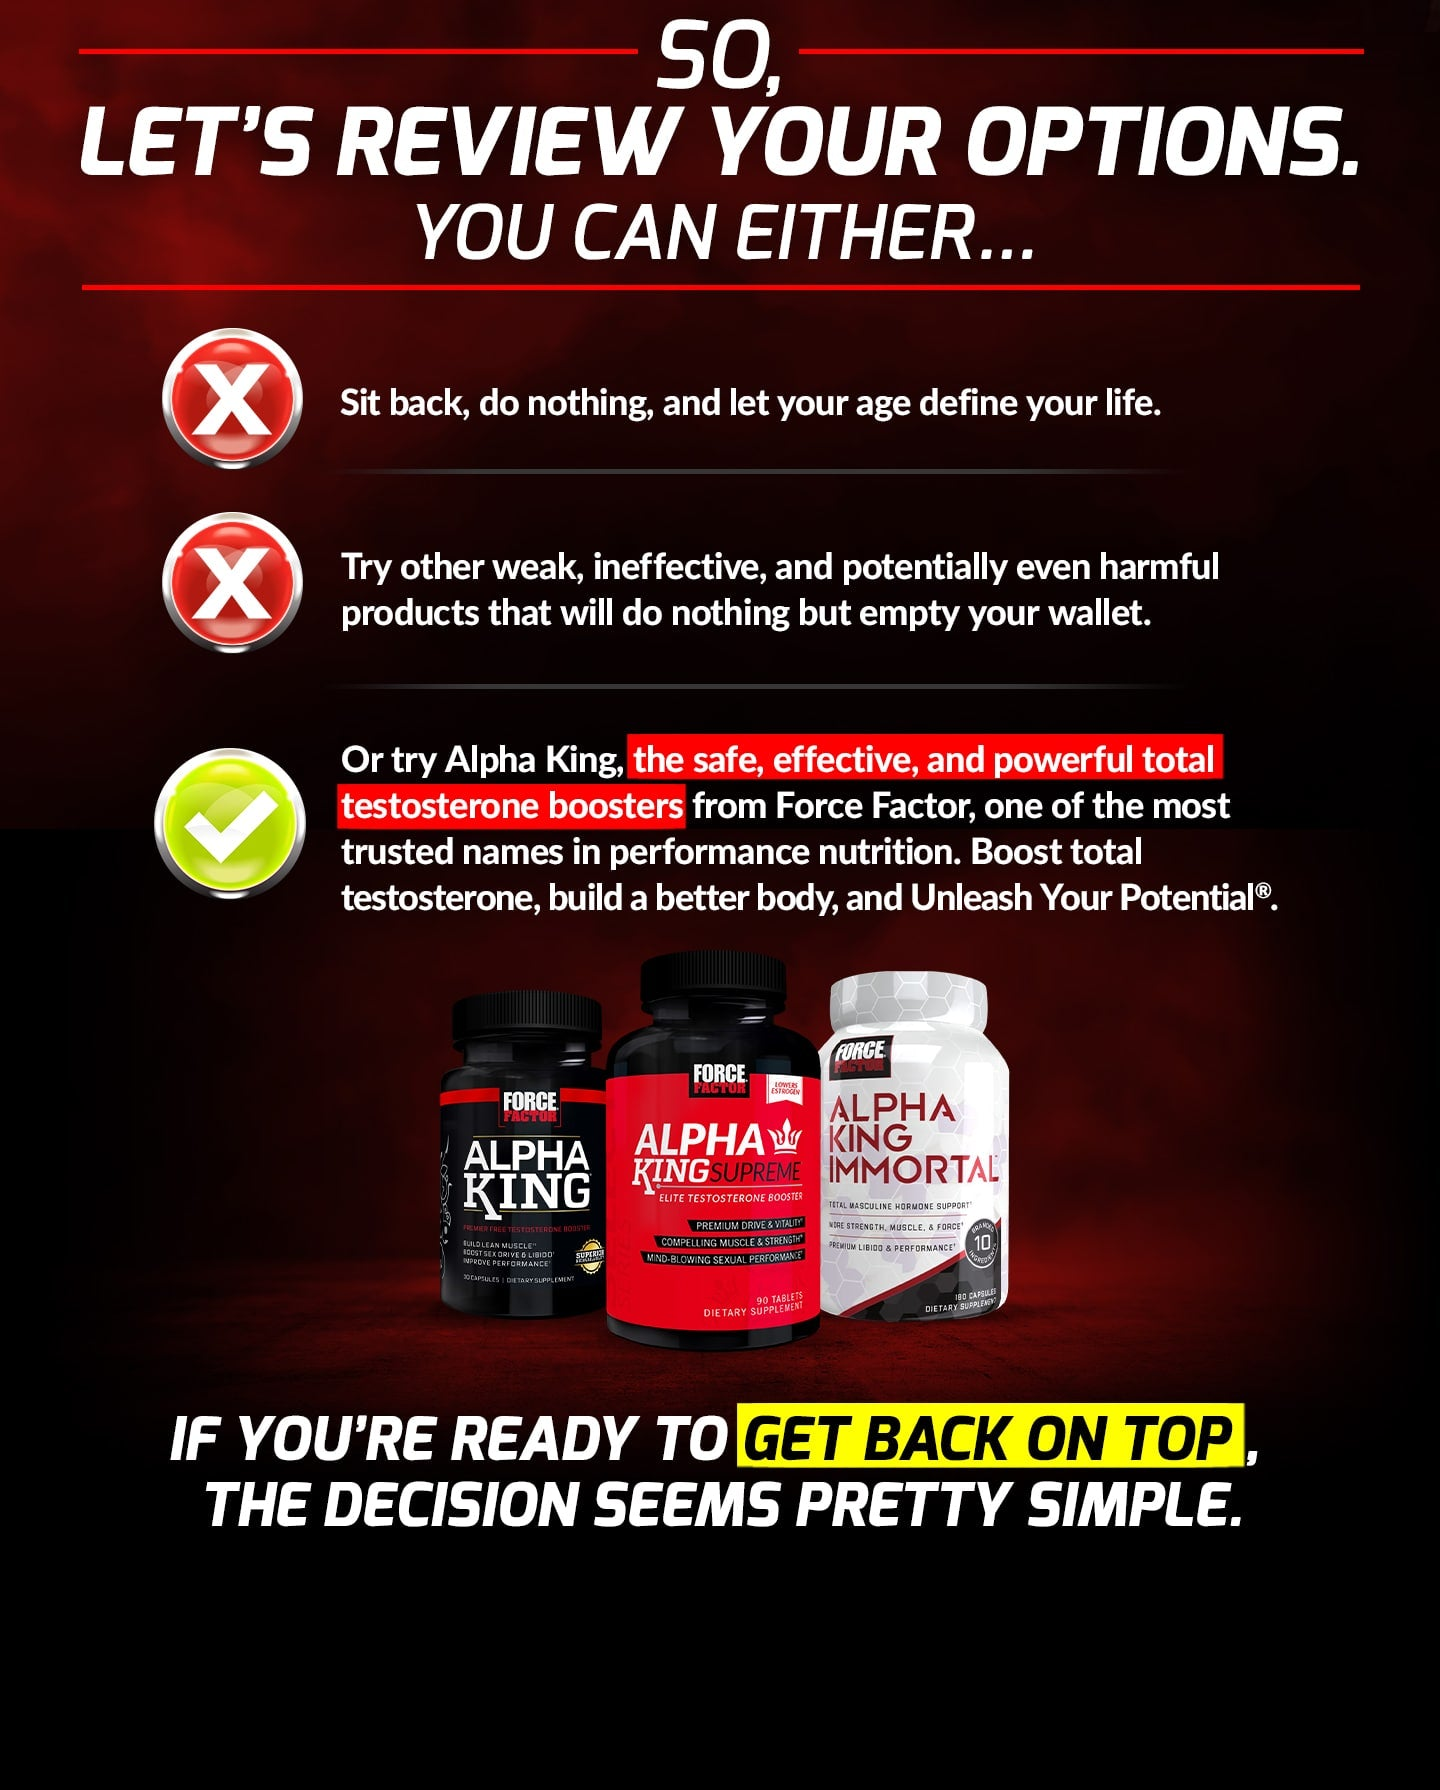 SO, LET'S REVIEW YOUR OPTIONS. YOU CAN EITHER... Sit back, do nothing, and let your age define your life. Try other weak, ineffective, and potentially even harmful products that will do nothing but empty your wallet. Or try Alpha King, the safe, effective, and powerful total testosterone boosters from Force Factor, one of the most trusted names in performance nutrition. Boost total testosterone, build a better body, and Unleash Your Potential®. IF YOU'RE READY TO GET BACK ON TOP, THE DECISION SEEMS PRETTY SIMPLE.